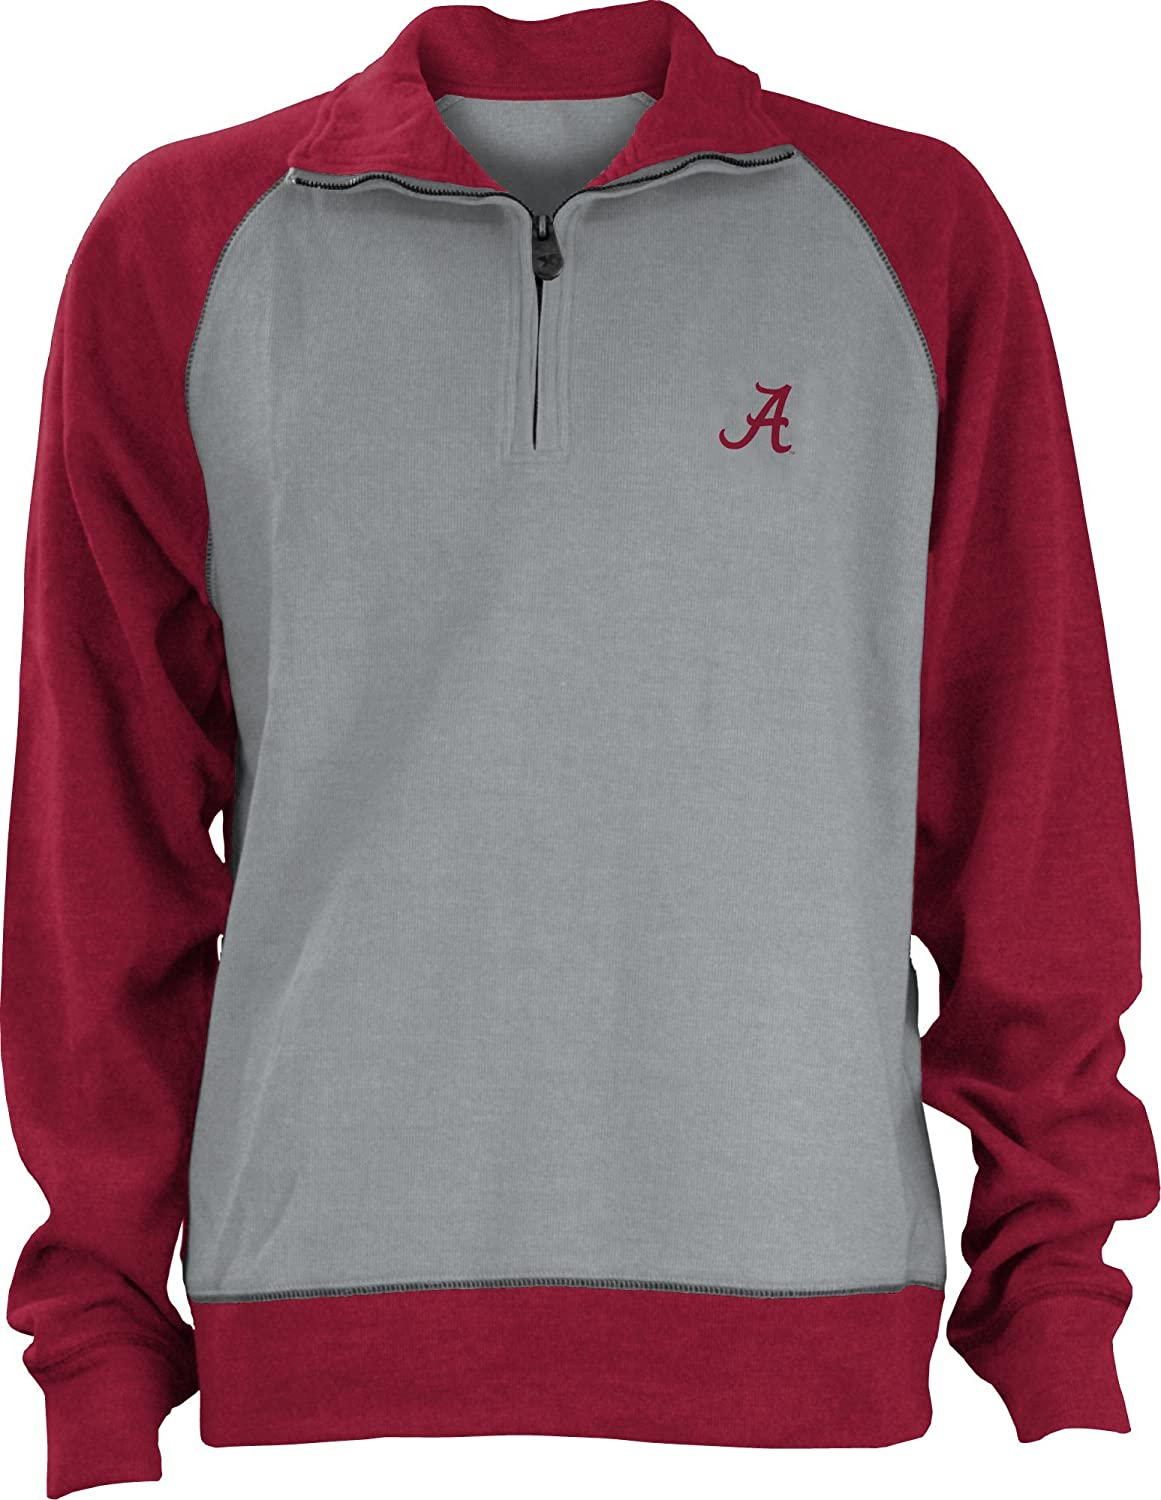 Deluxe Three Square by low-pricing Royce Apparel Rib Pullover Dexter Men's NCAA